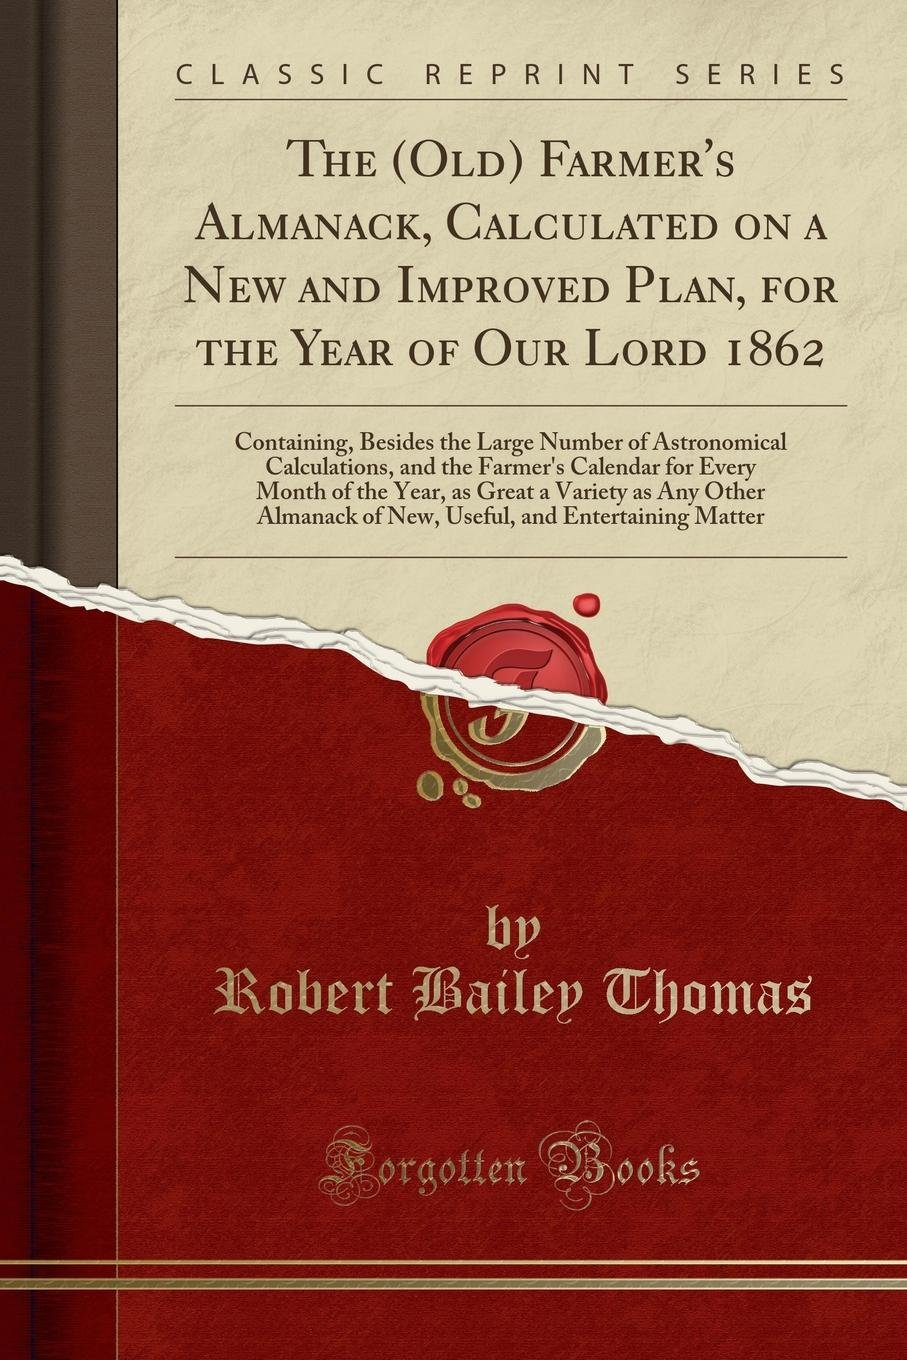 Read Online The (Old) Farmer's Almanack, Calculated on a New and Improved Plan, for the Year of Our Lord 1862: Containing, Besides the Large Number of ... the Year, as Great a Variety as Any Other Al pdf epub